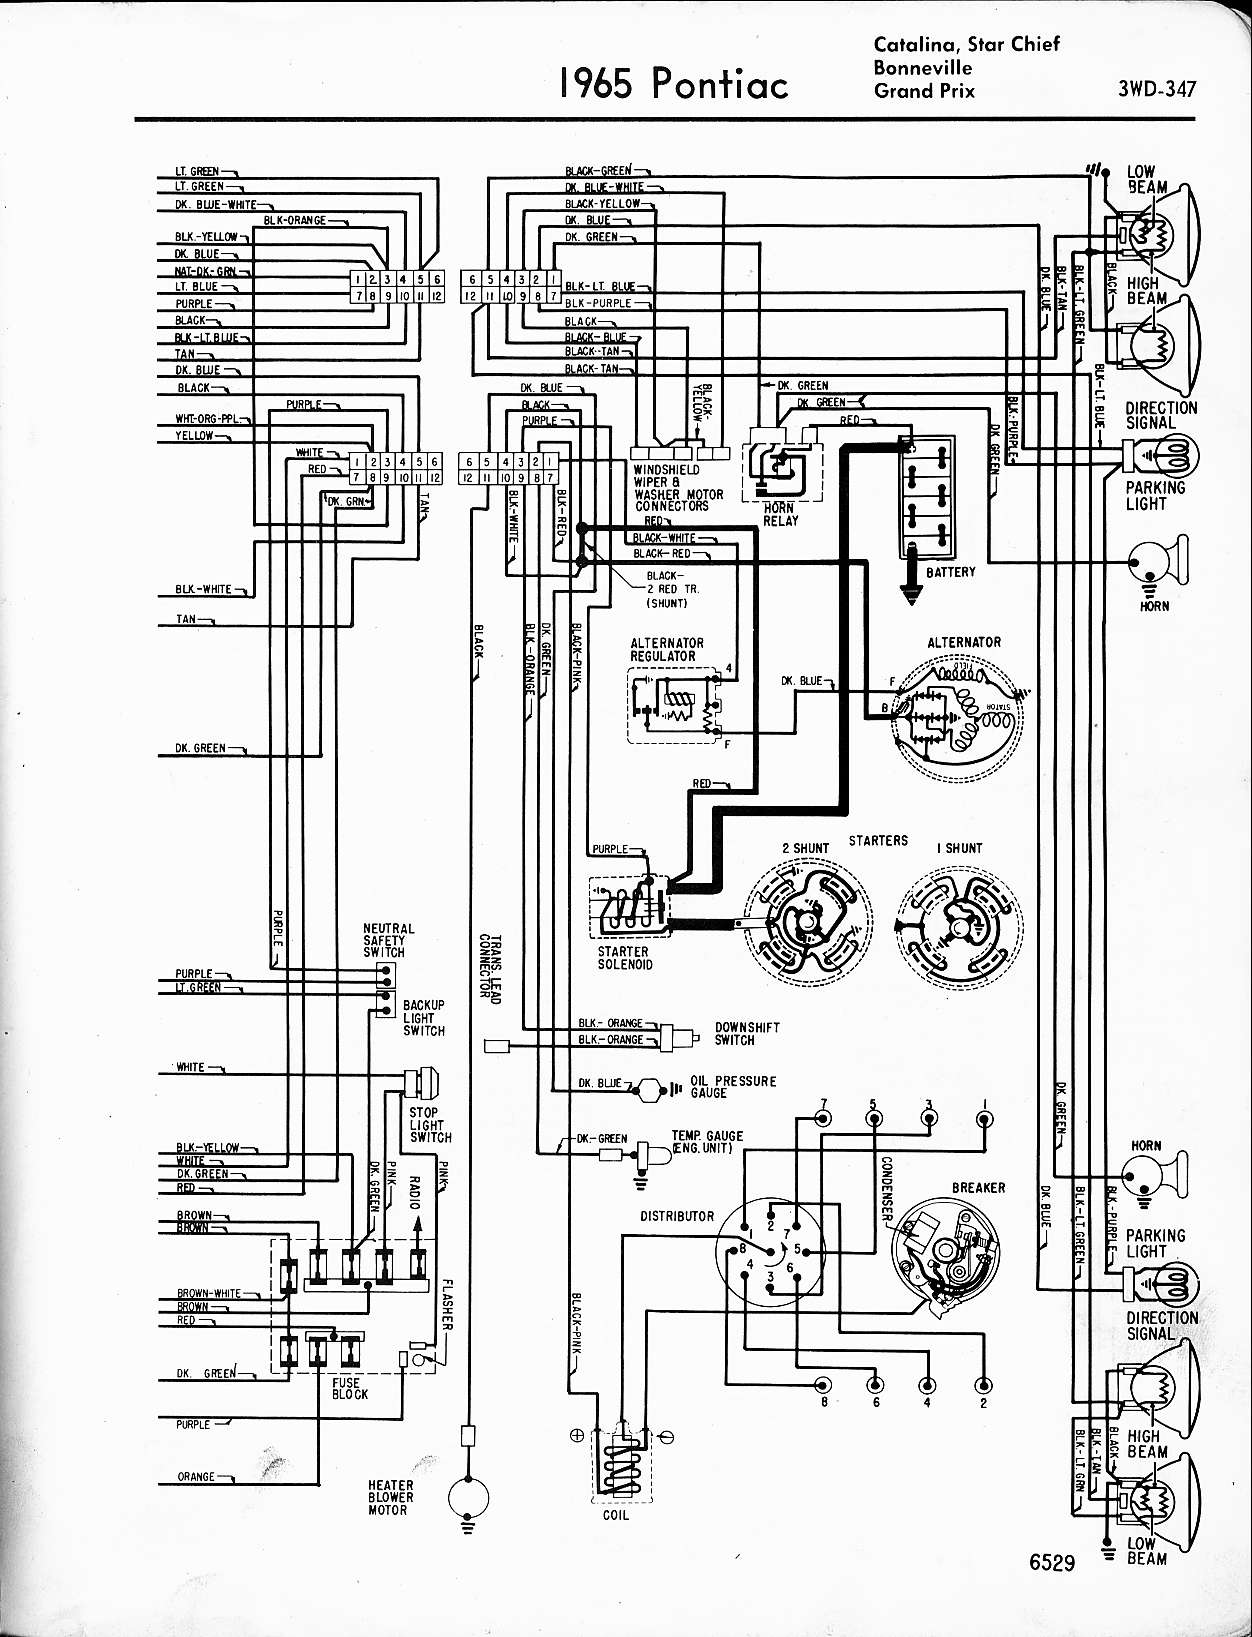 2008 09 30_090724_1966_pontiac_wiring_diagram i have a 1966 pontiac gto, it has 5 wires going to the starter i pontiac gto wiring diagram at readyjetset.co